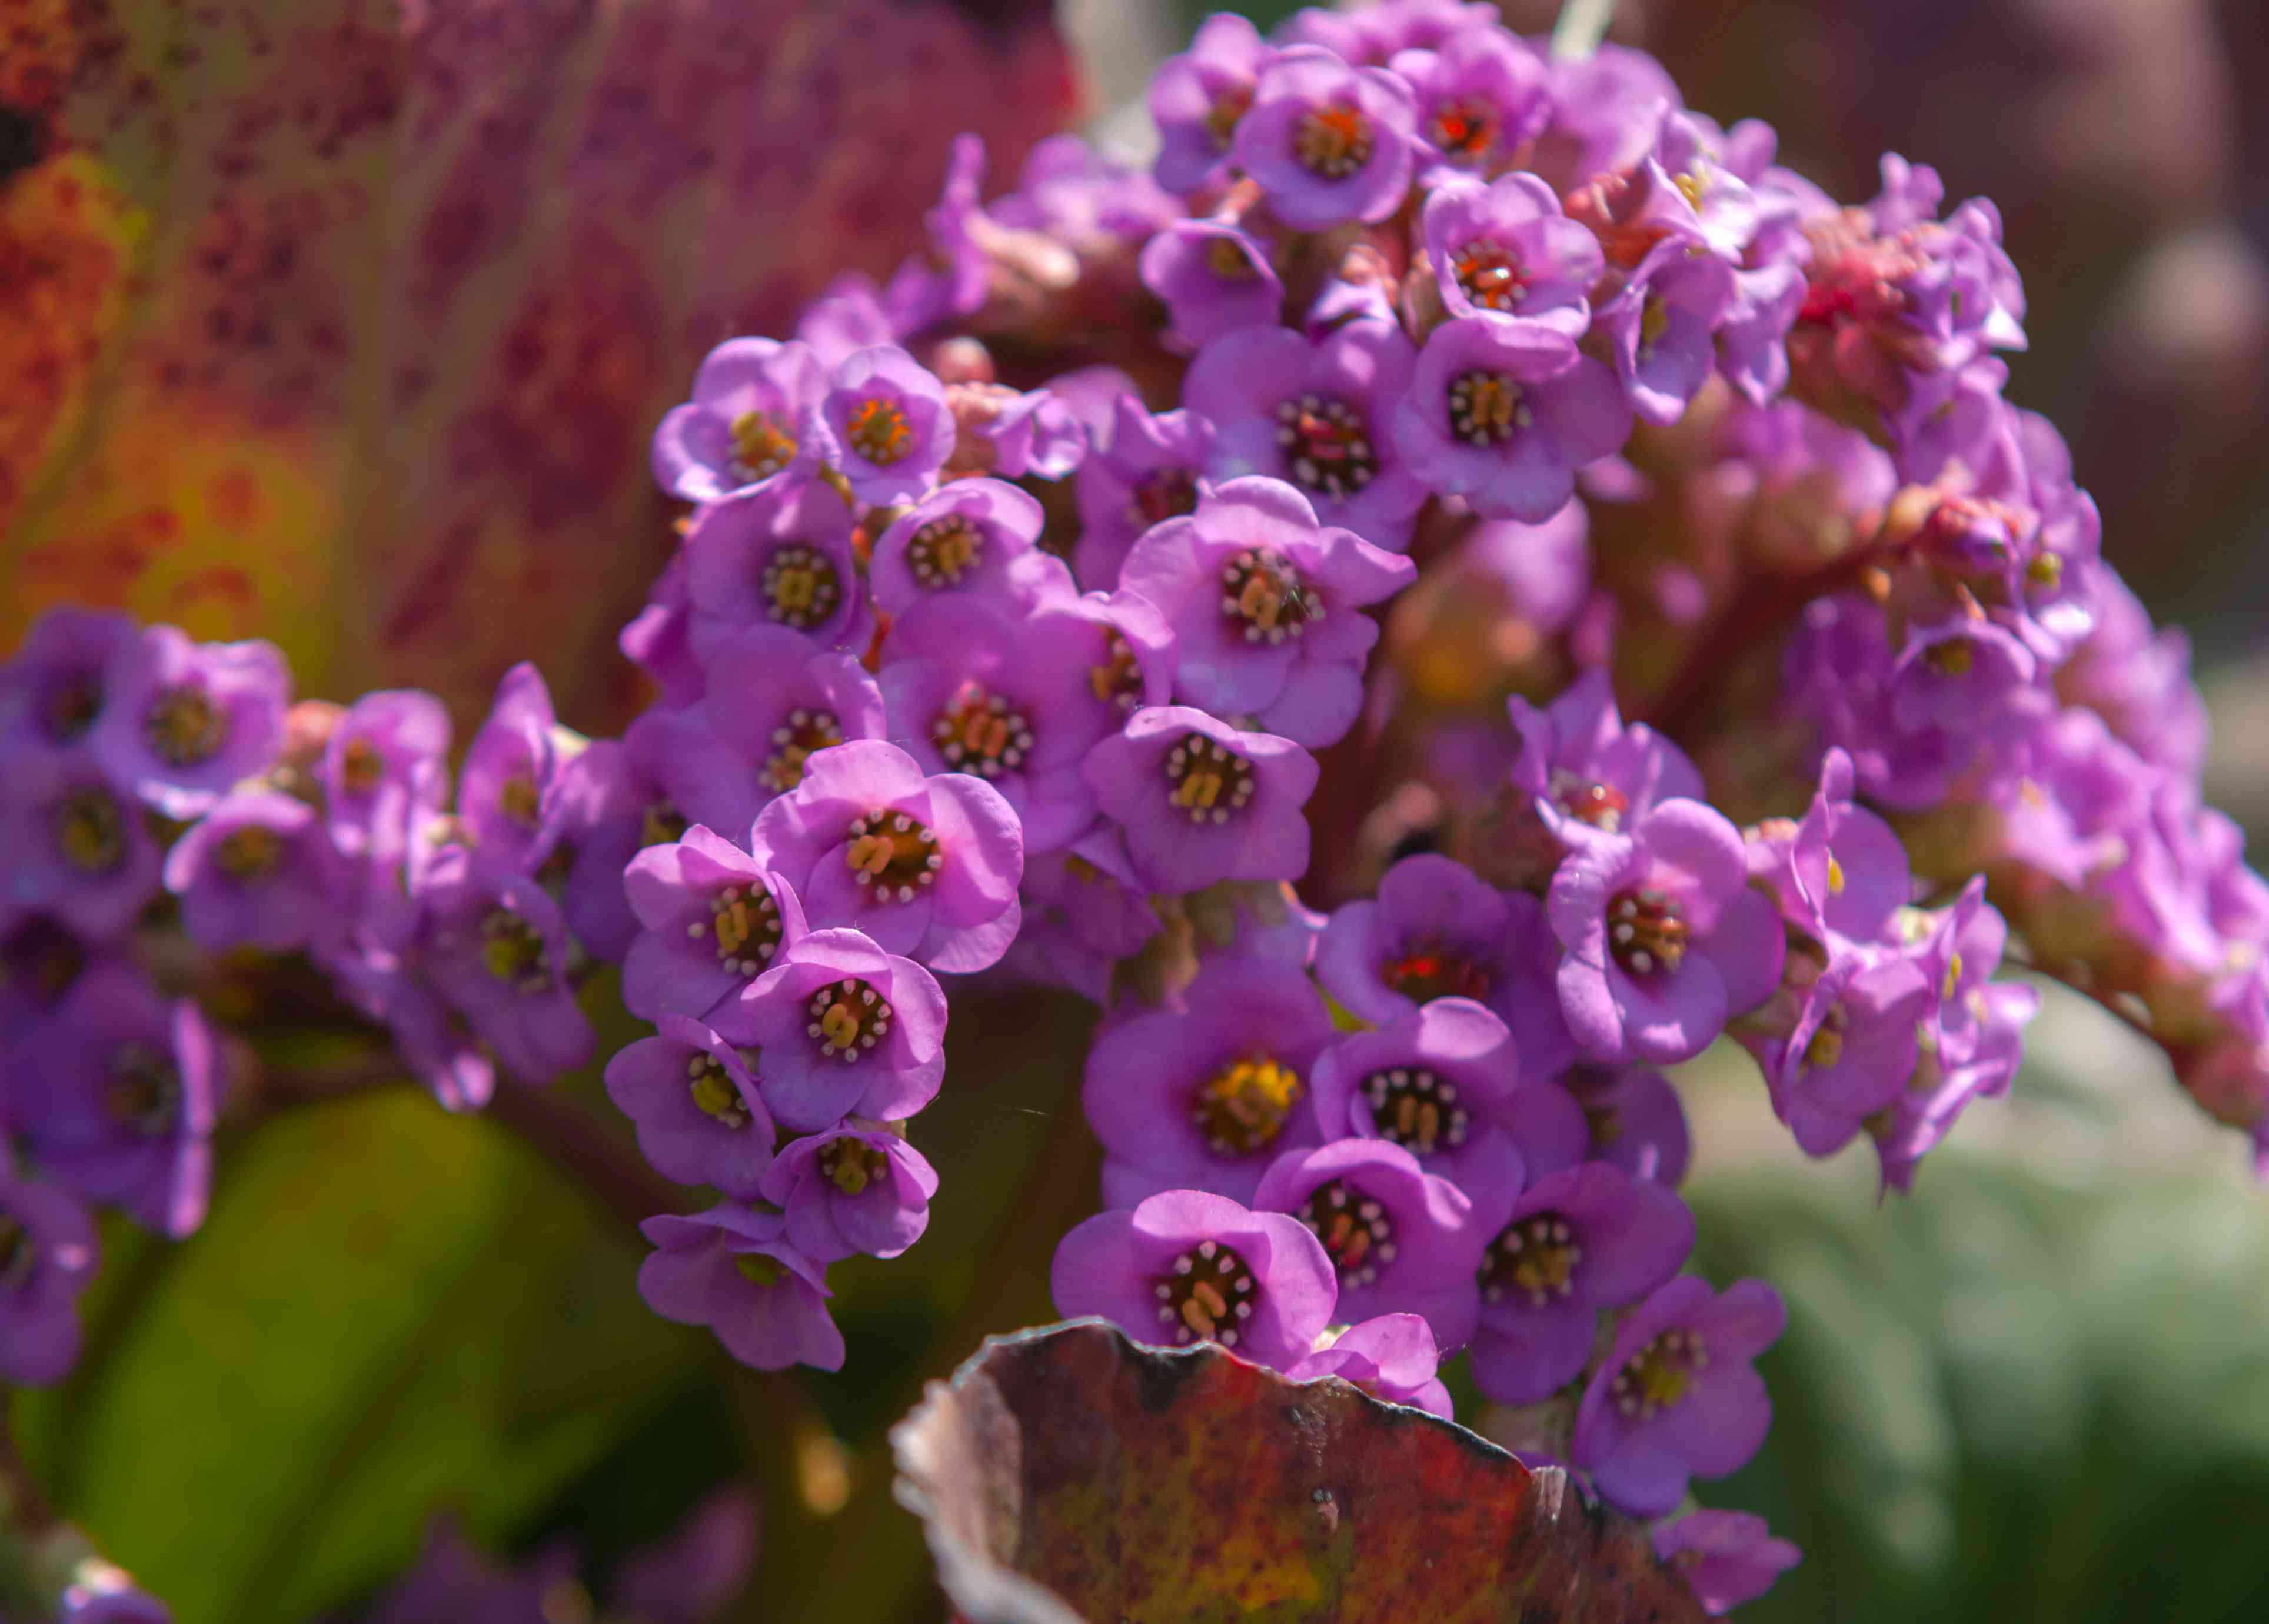 Bergenia plant with small deep pink flowers clustered together in sunlight closeup